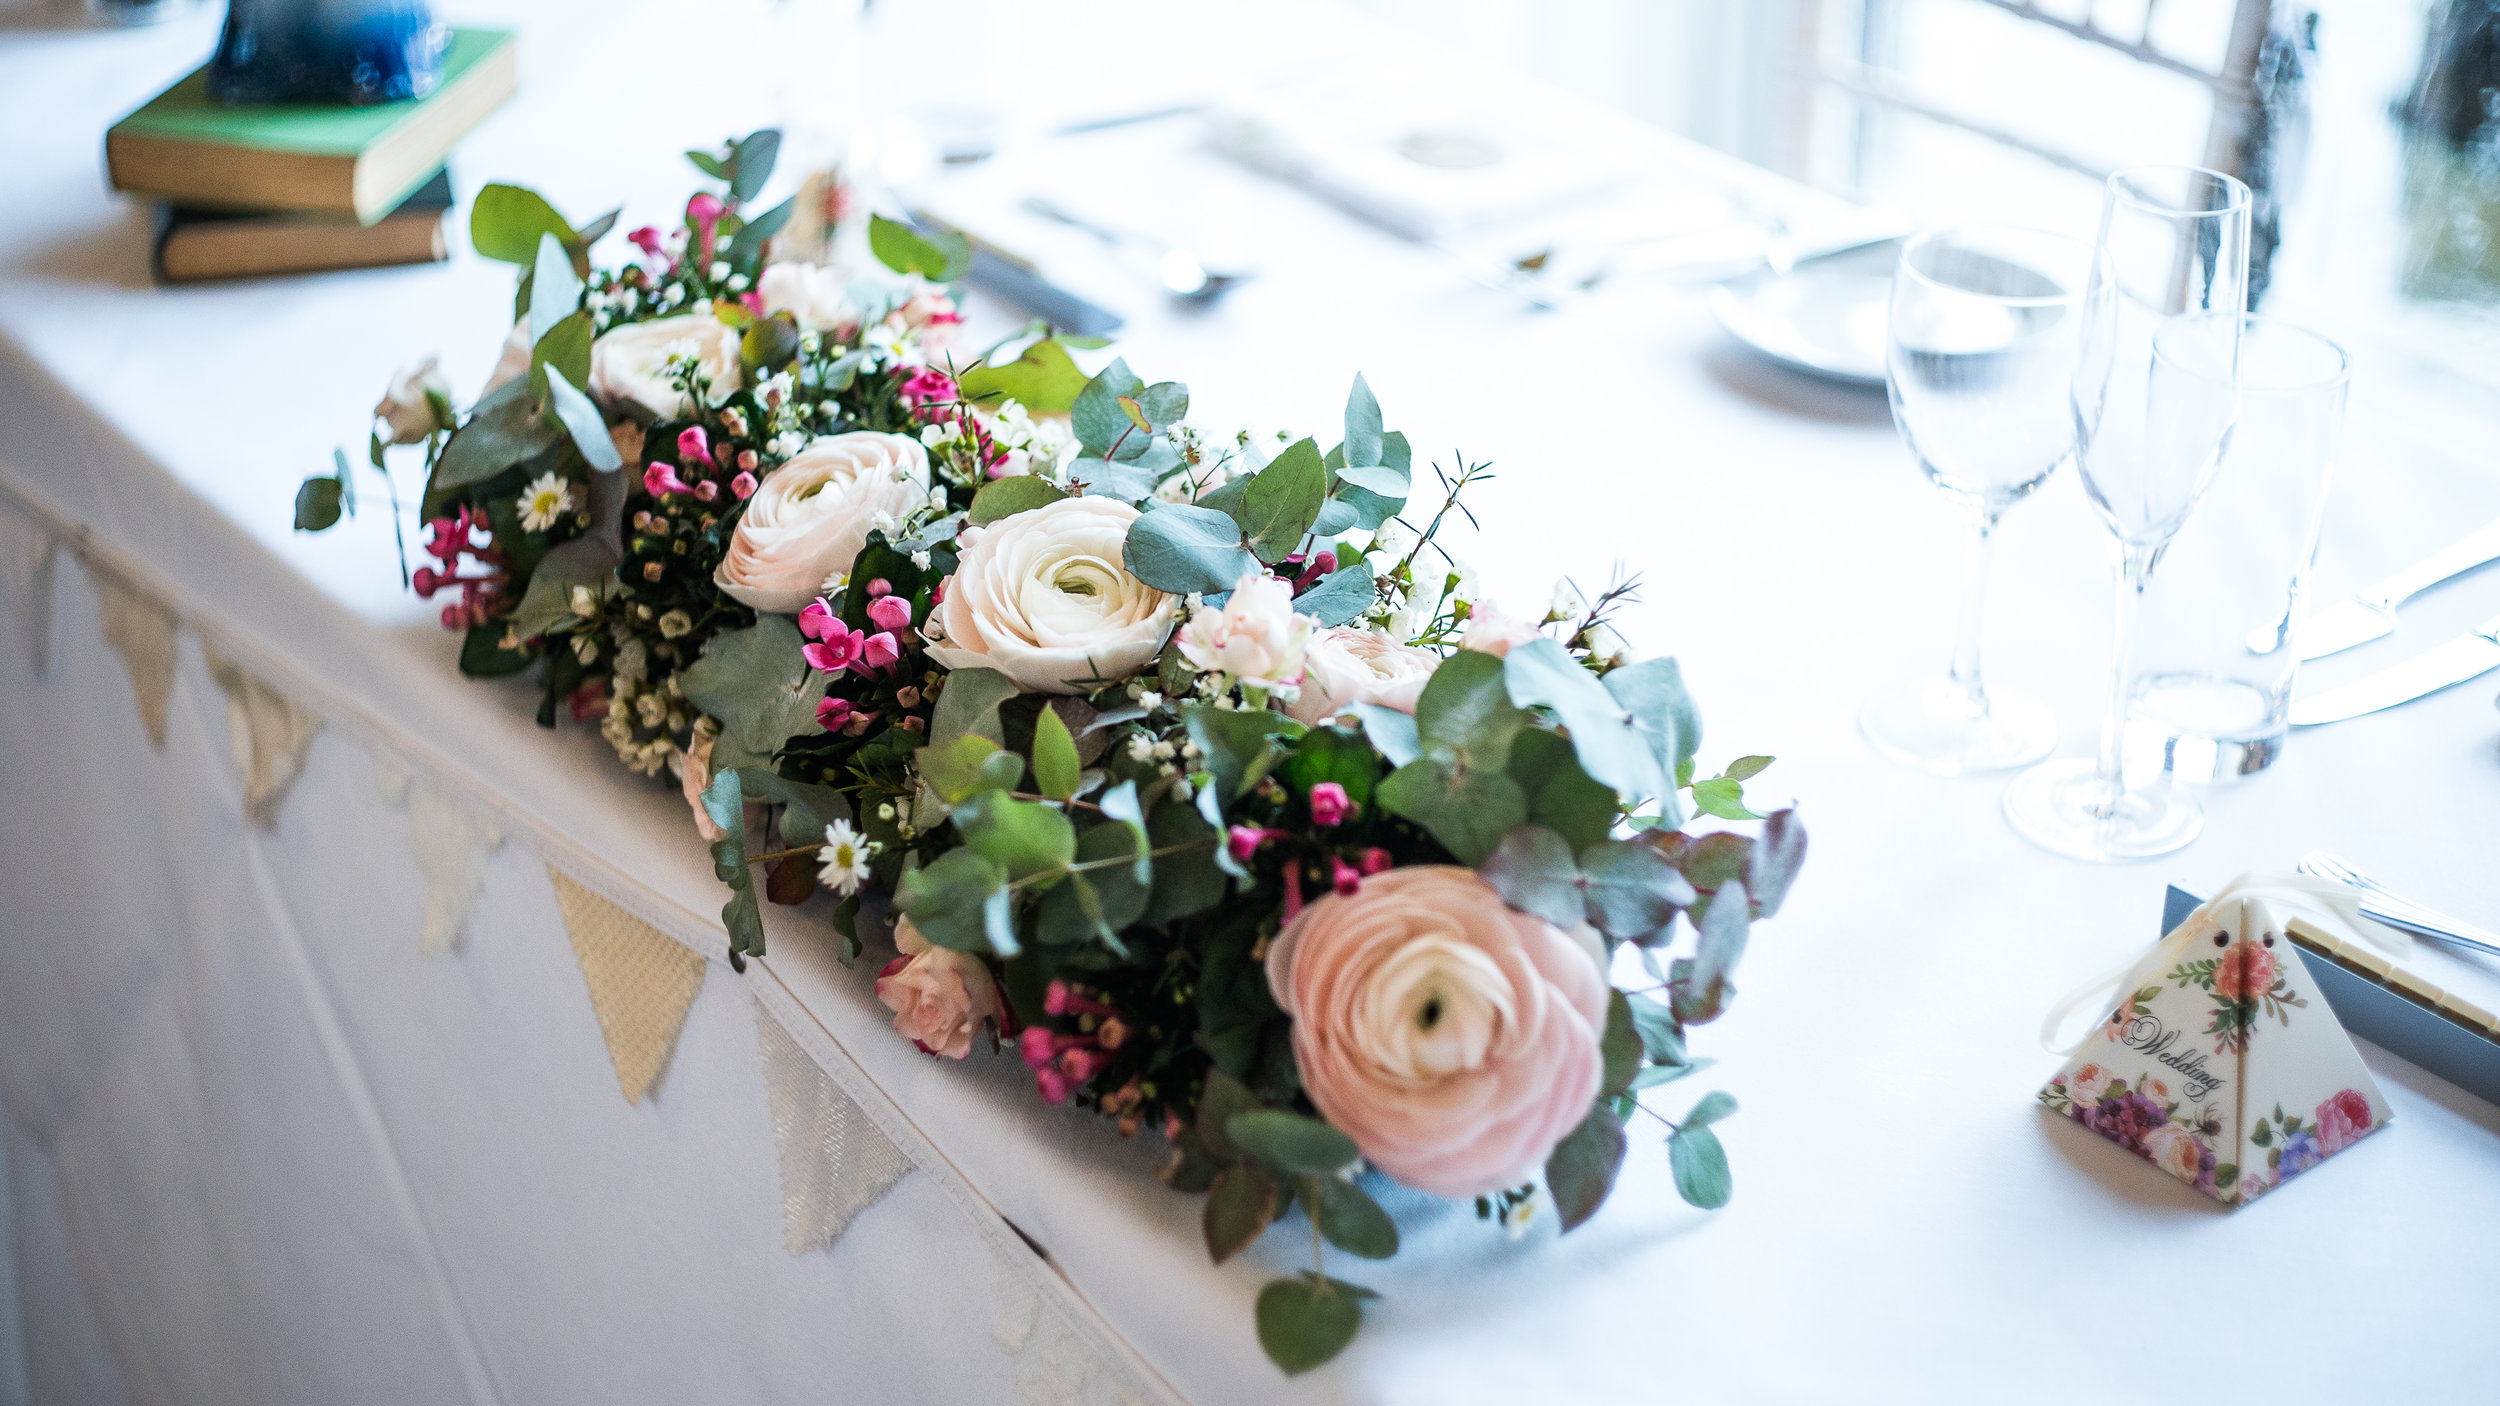 Flowers by Creative Rally |Photography by Mauricio Gris | Venue: Long Furlong Barn, West Sussex